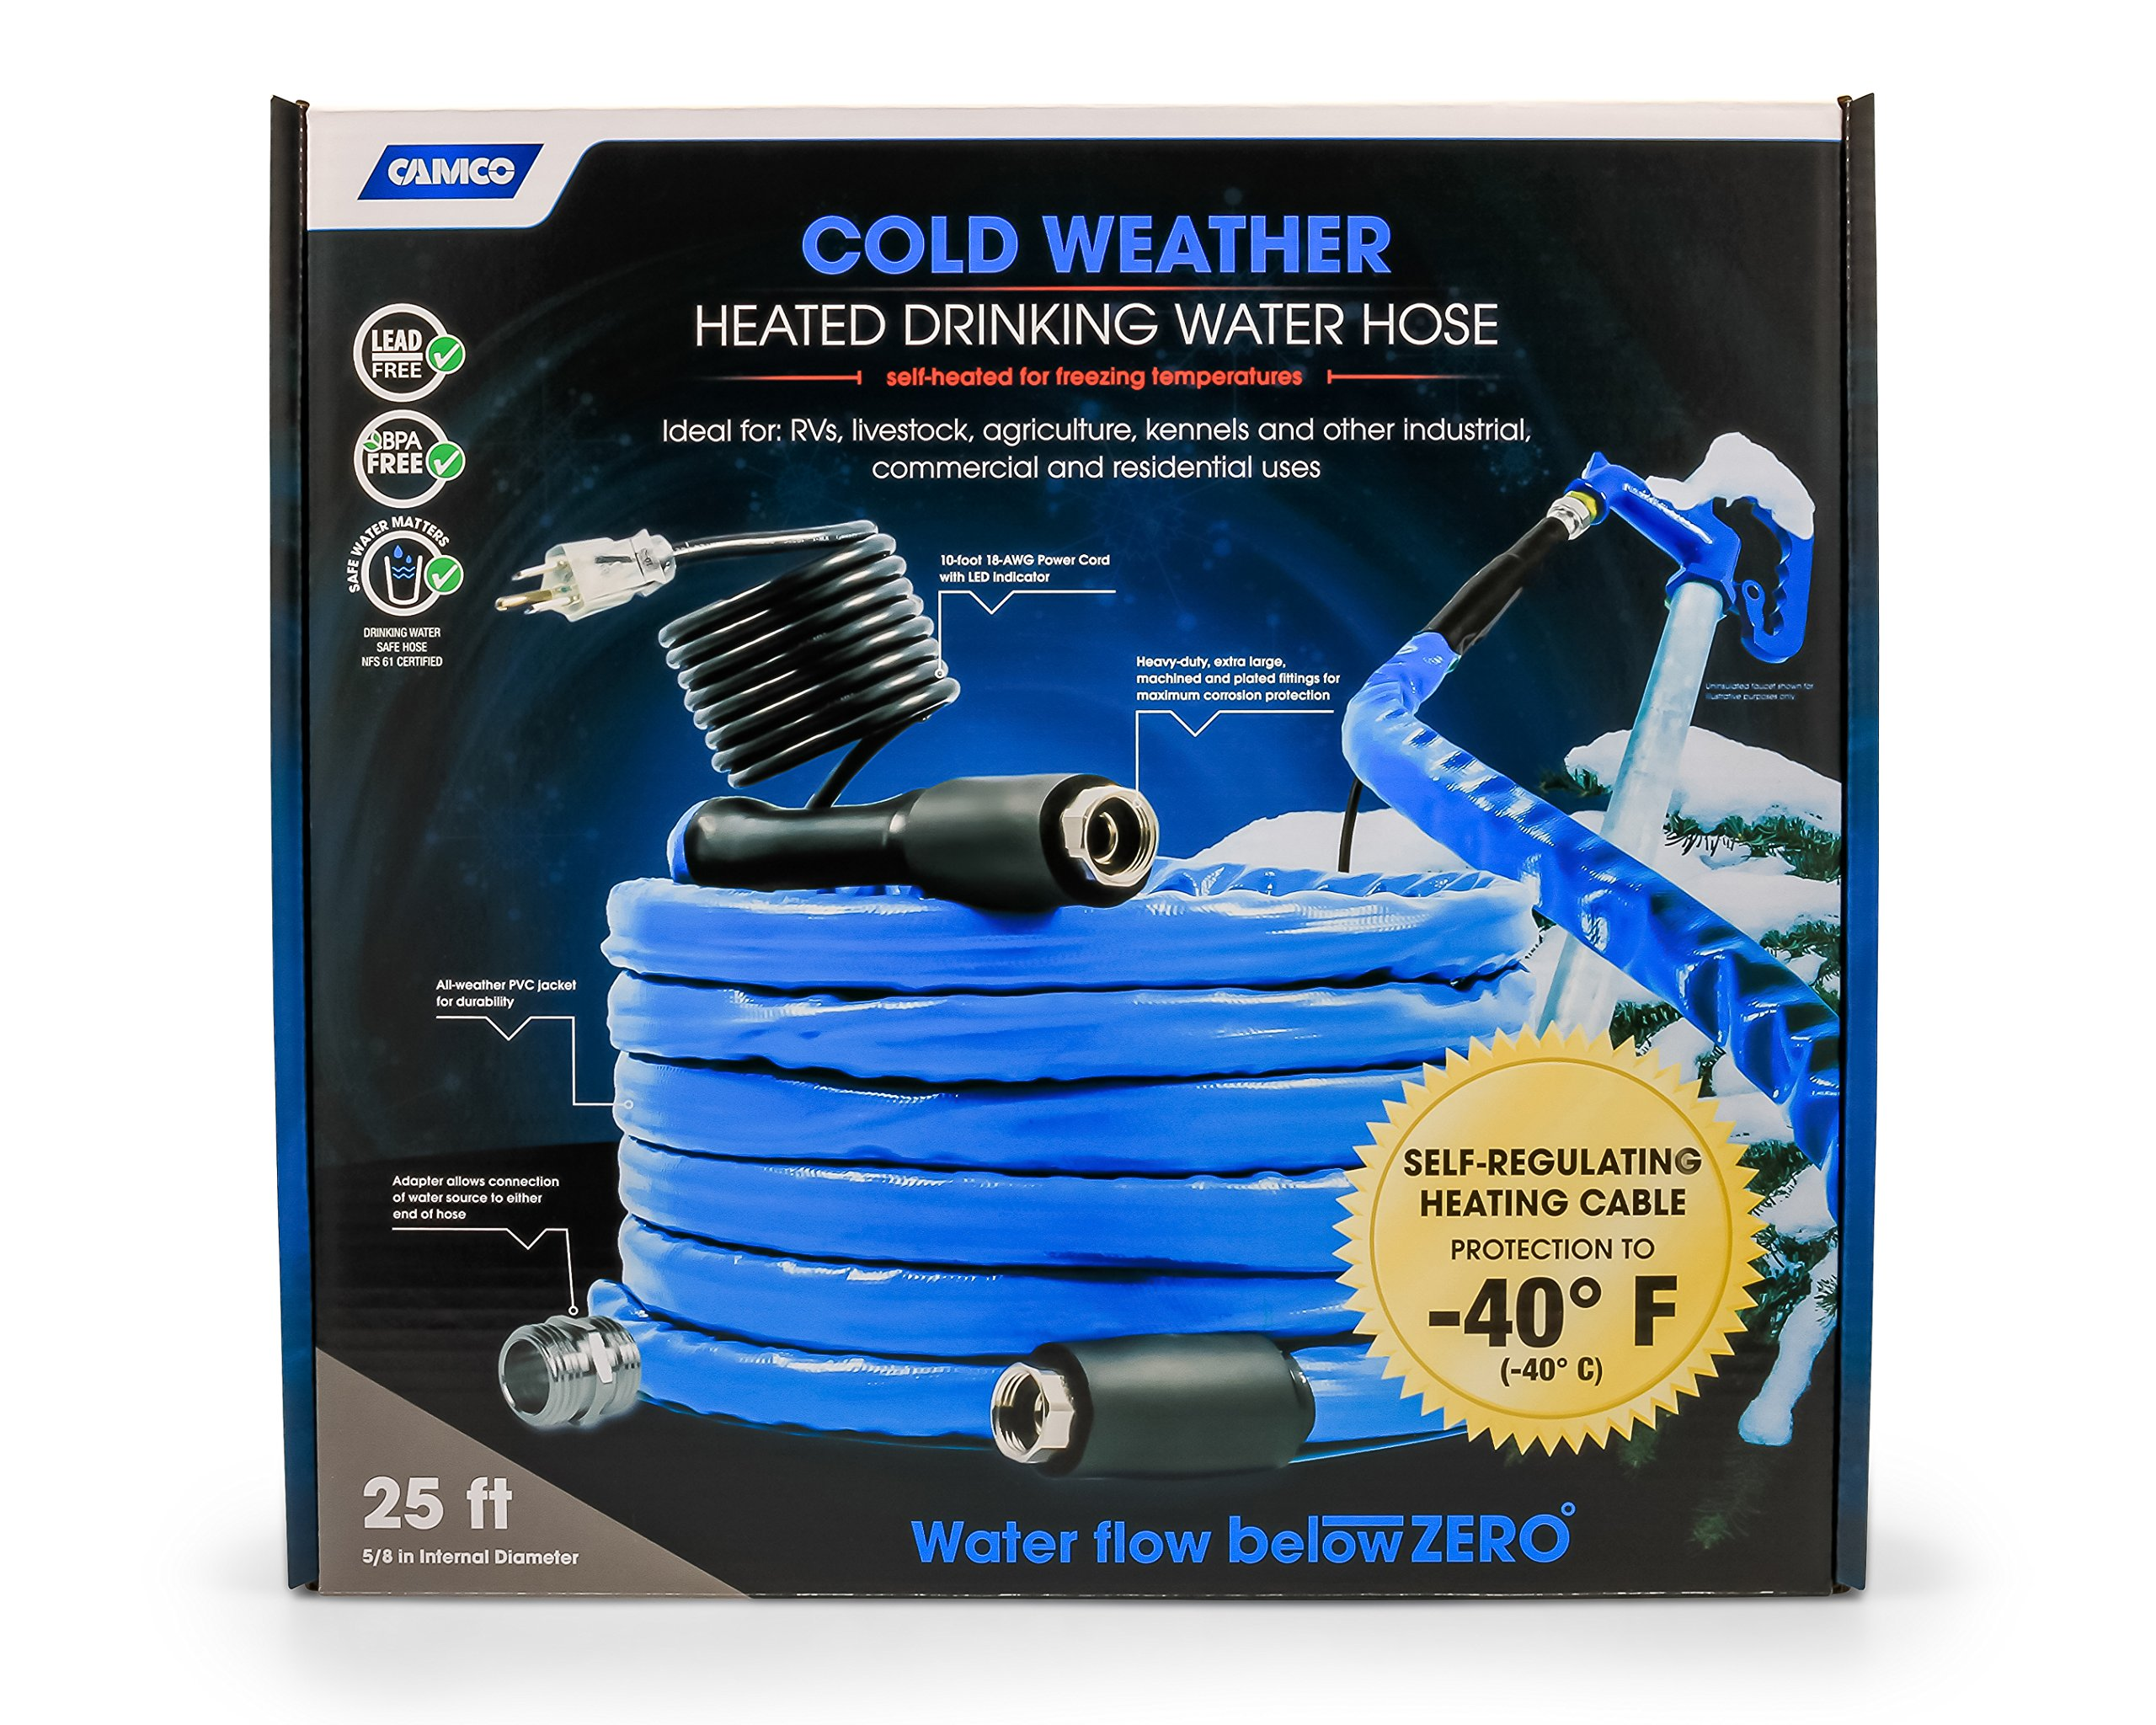 Camco 25ft Cold Weather Heated Drinking Water Hose Can Withstand Temperatures Down to -40°F/C- Lead and BPA Free, Reinforced for Maximum Kink Resistance  5/8'' Inner Diameter (22923) by Camco